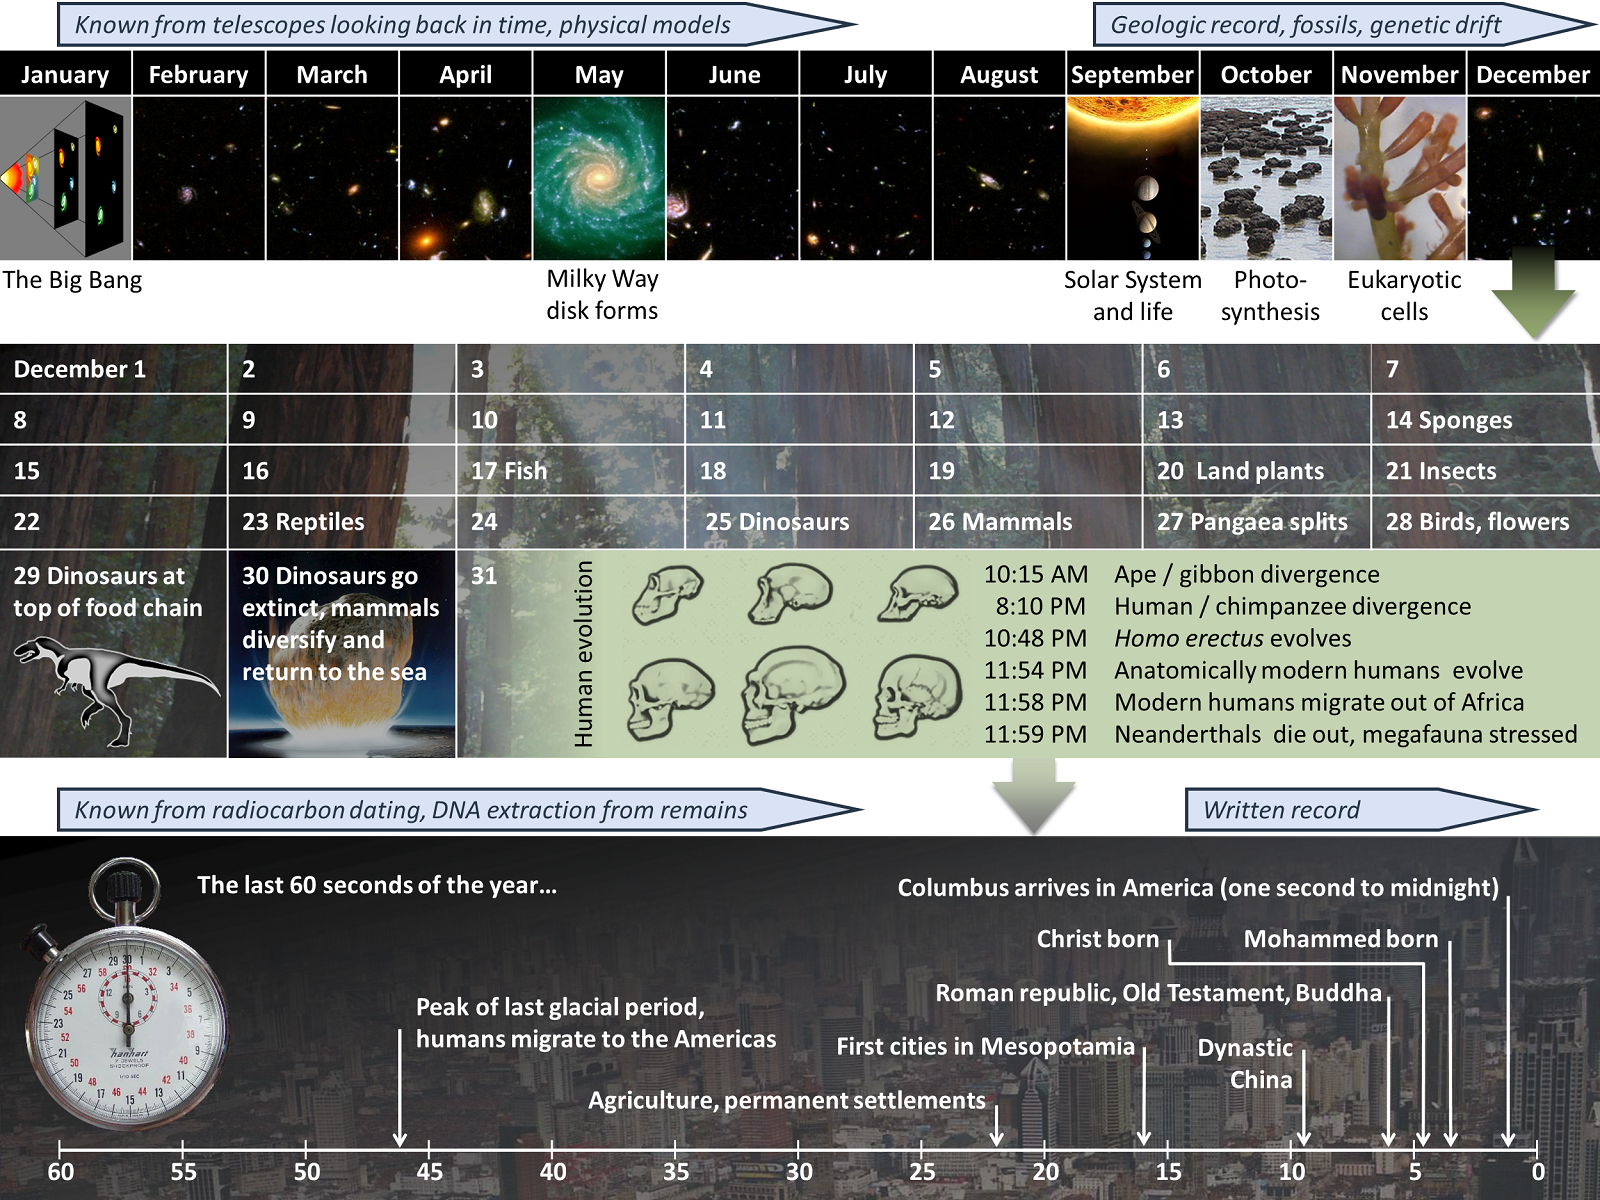 The cosmic calendar: time from the big bang to present day, represented on a twelve month calendar.